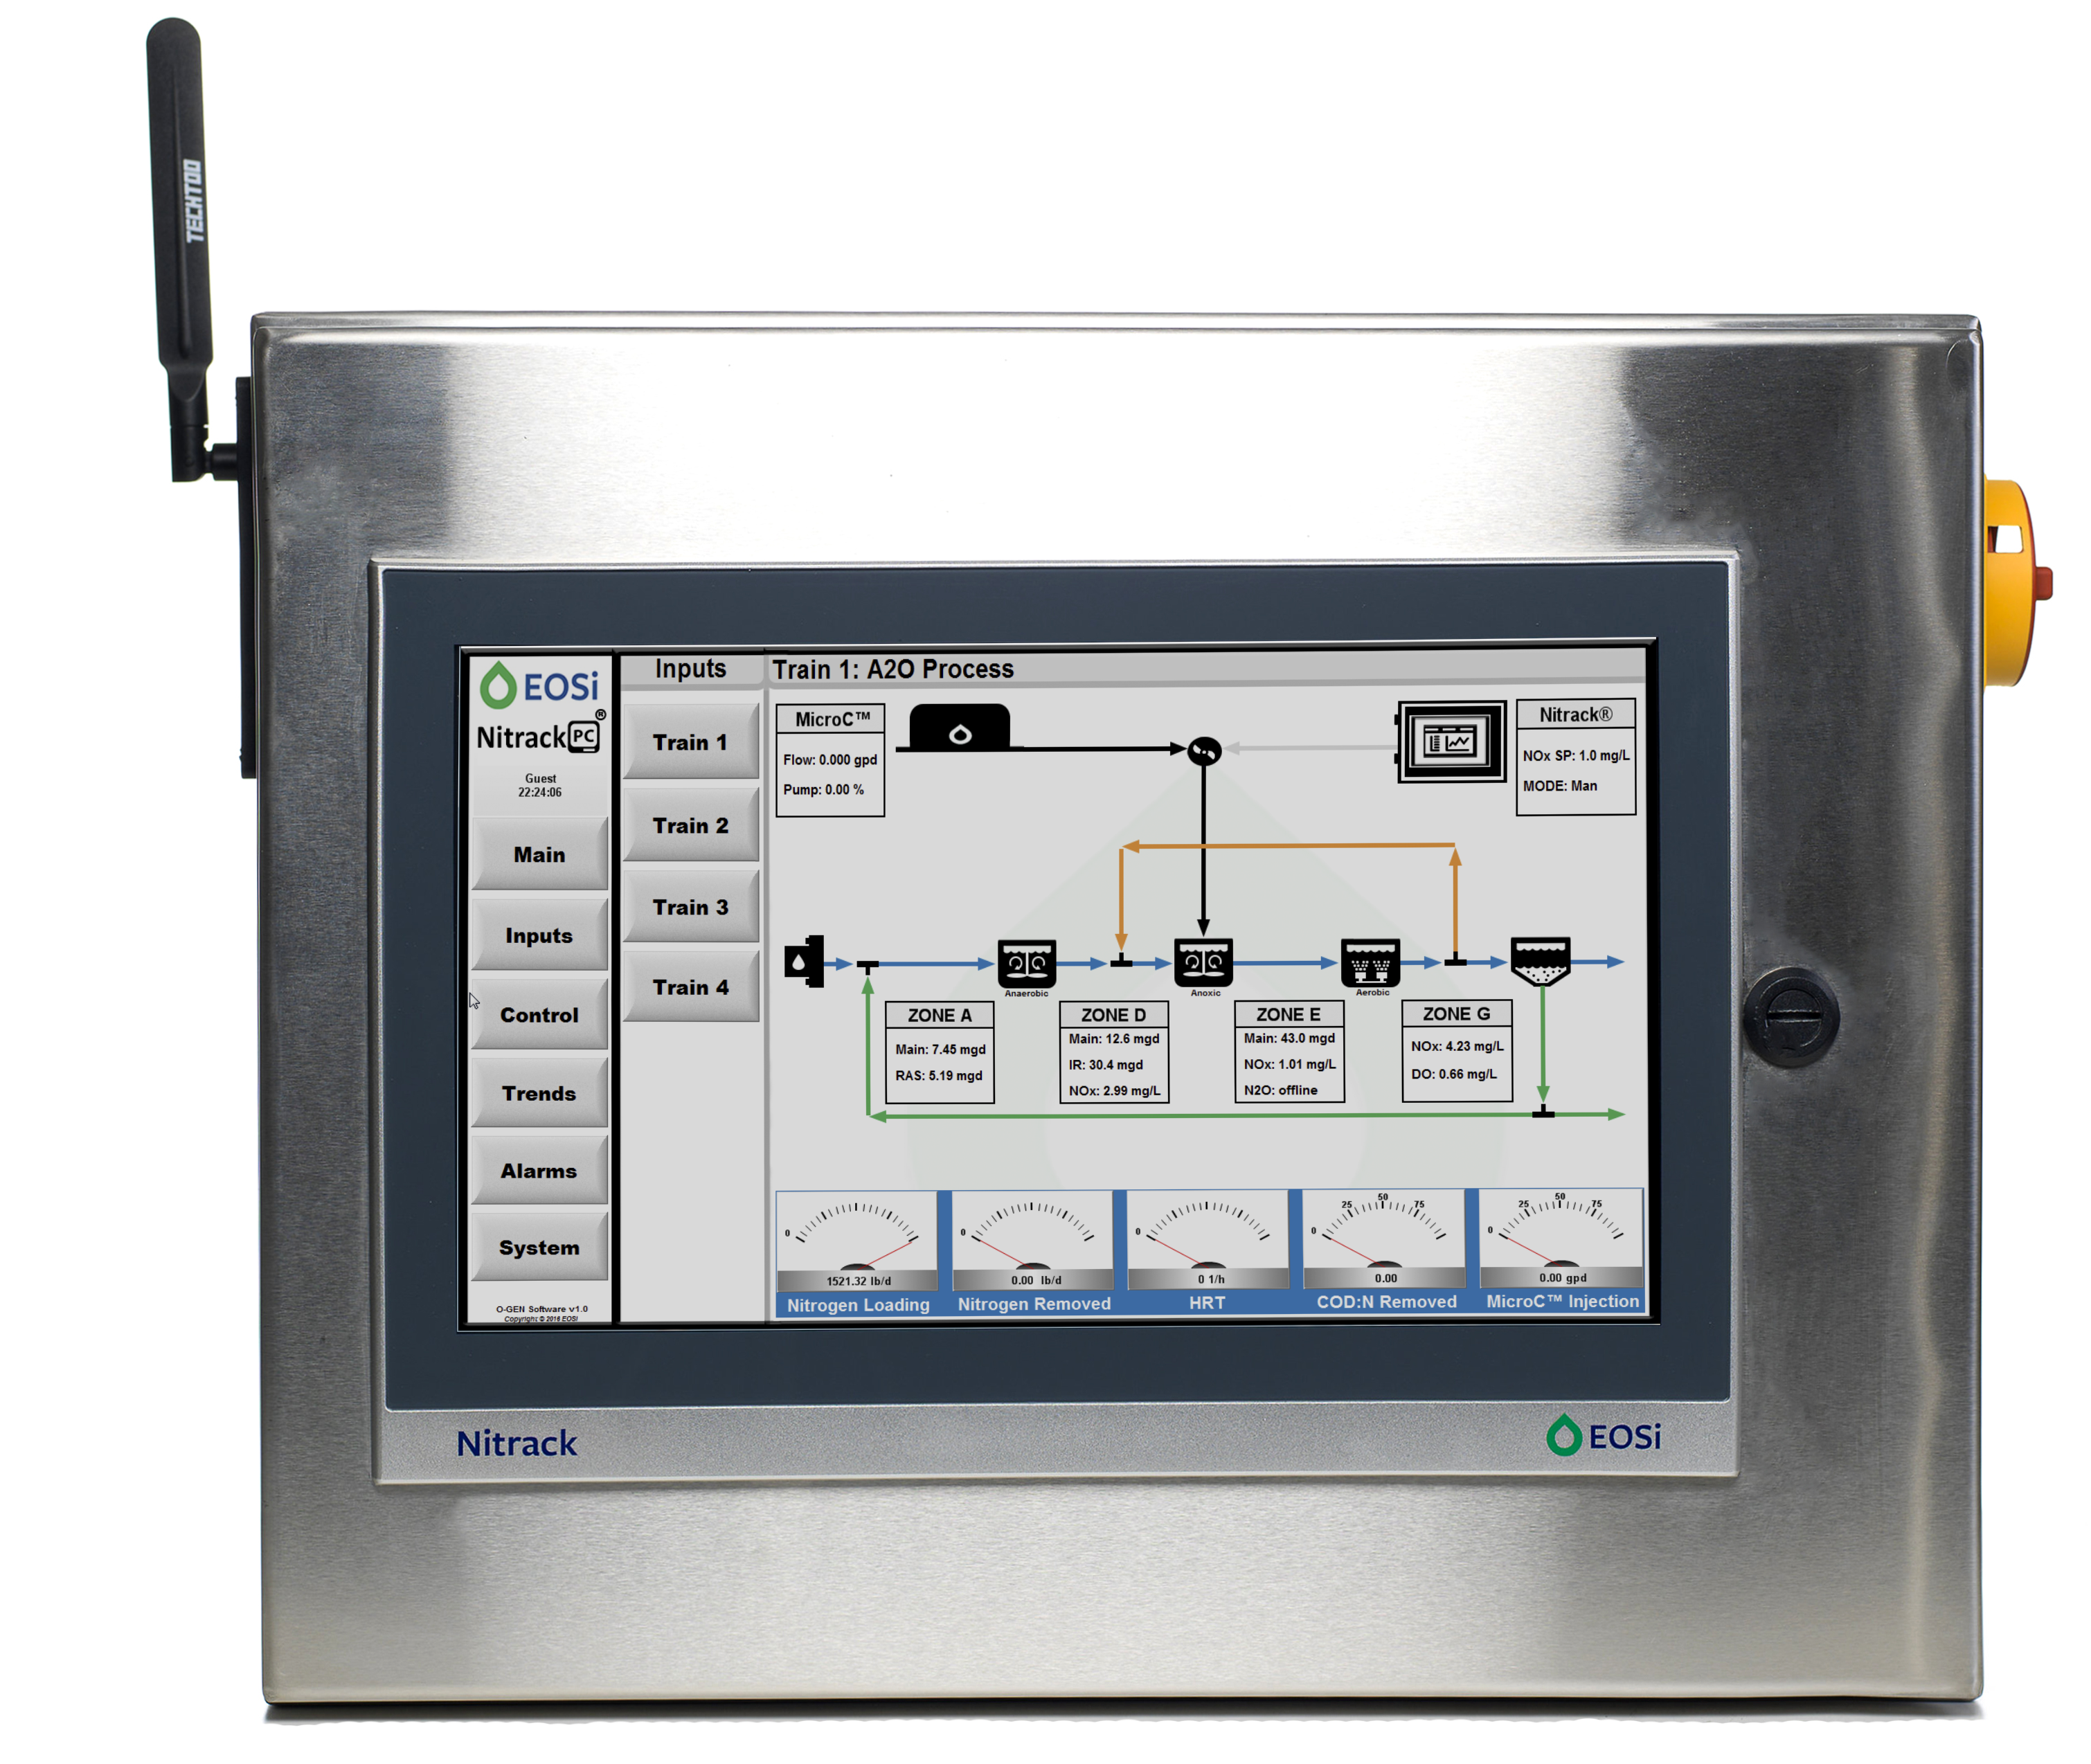 Nitrack process control unit with human machine interface showing plant wastewater treatment process